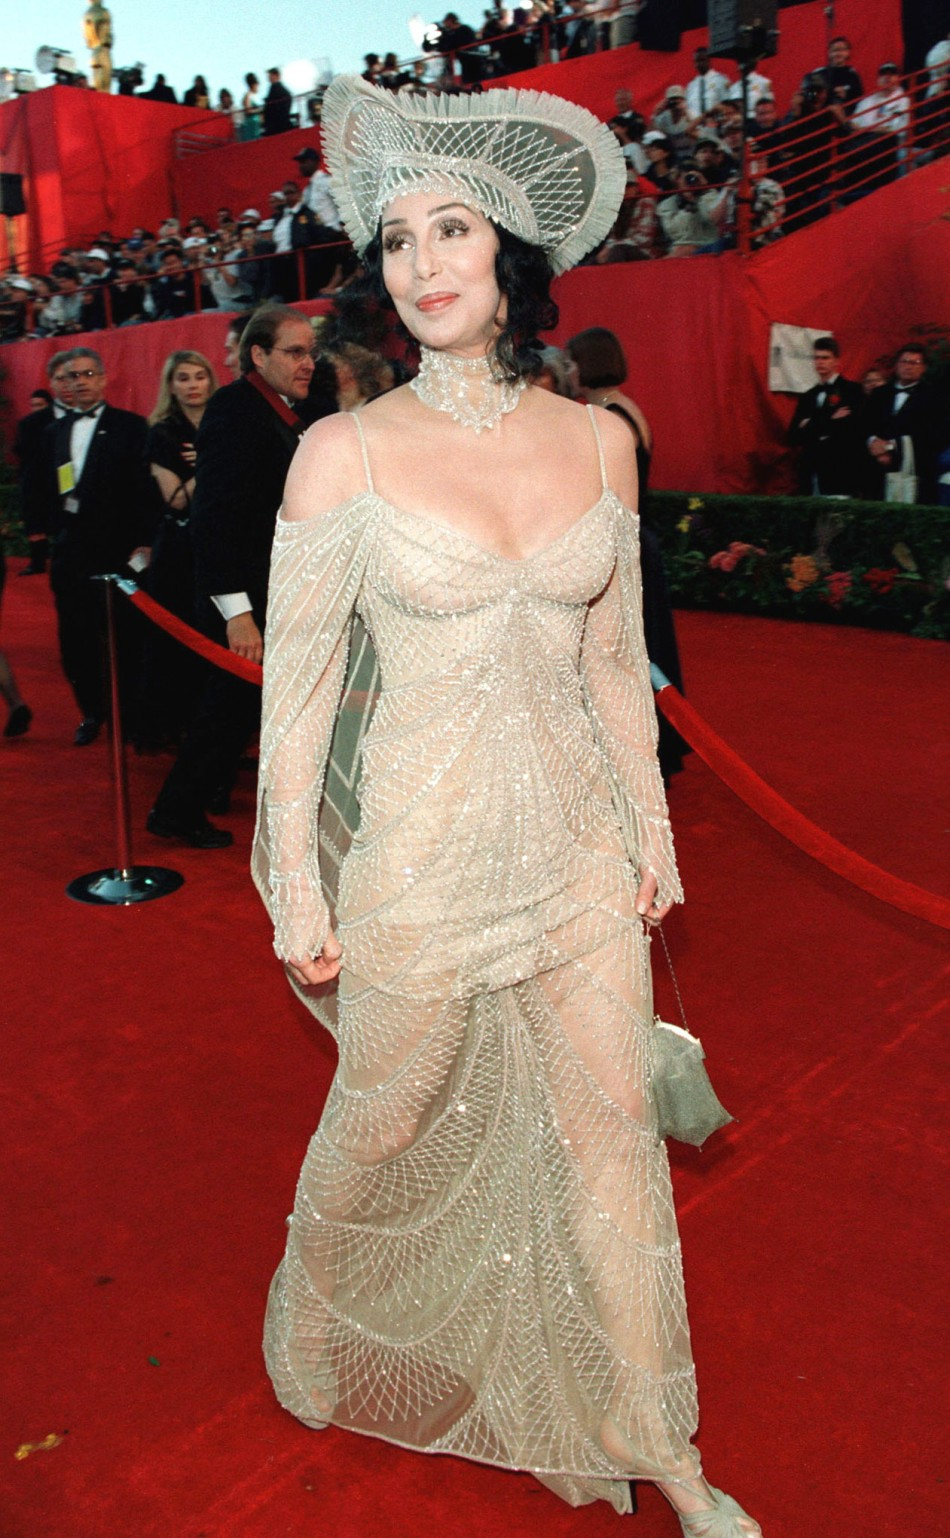 Singer and actress, Cher at the 70th Academy Awards